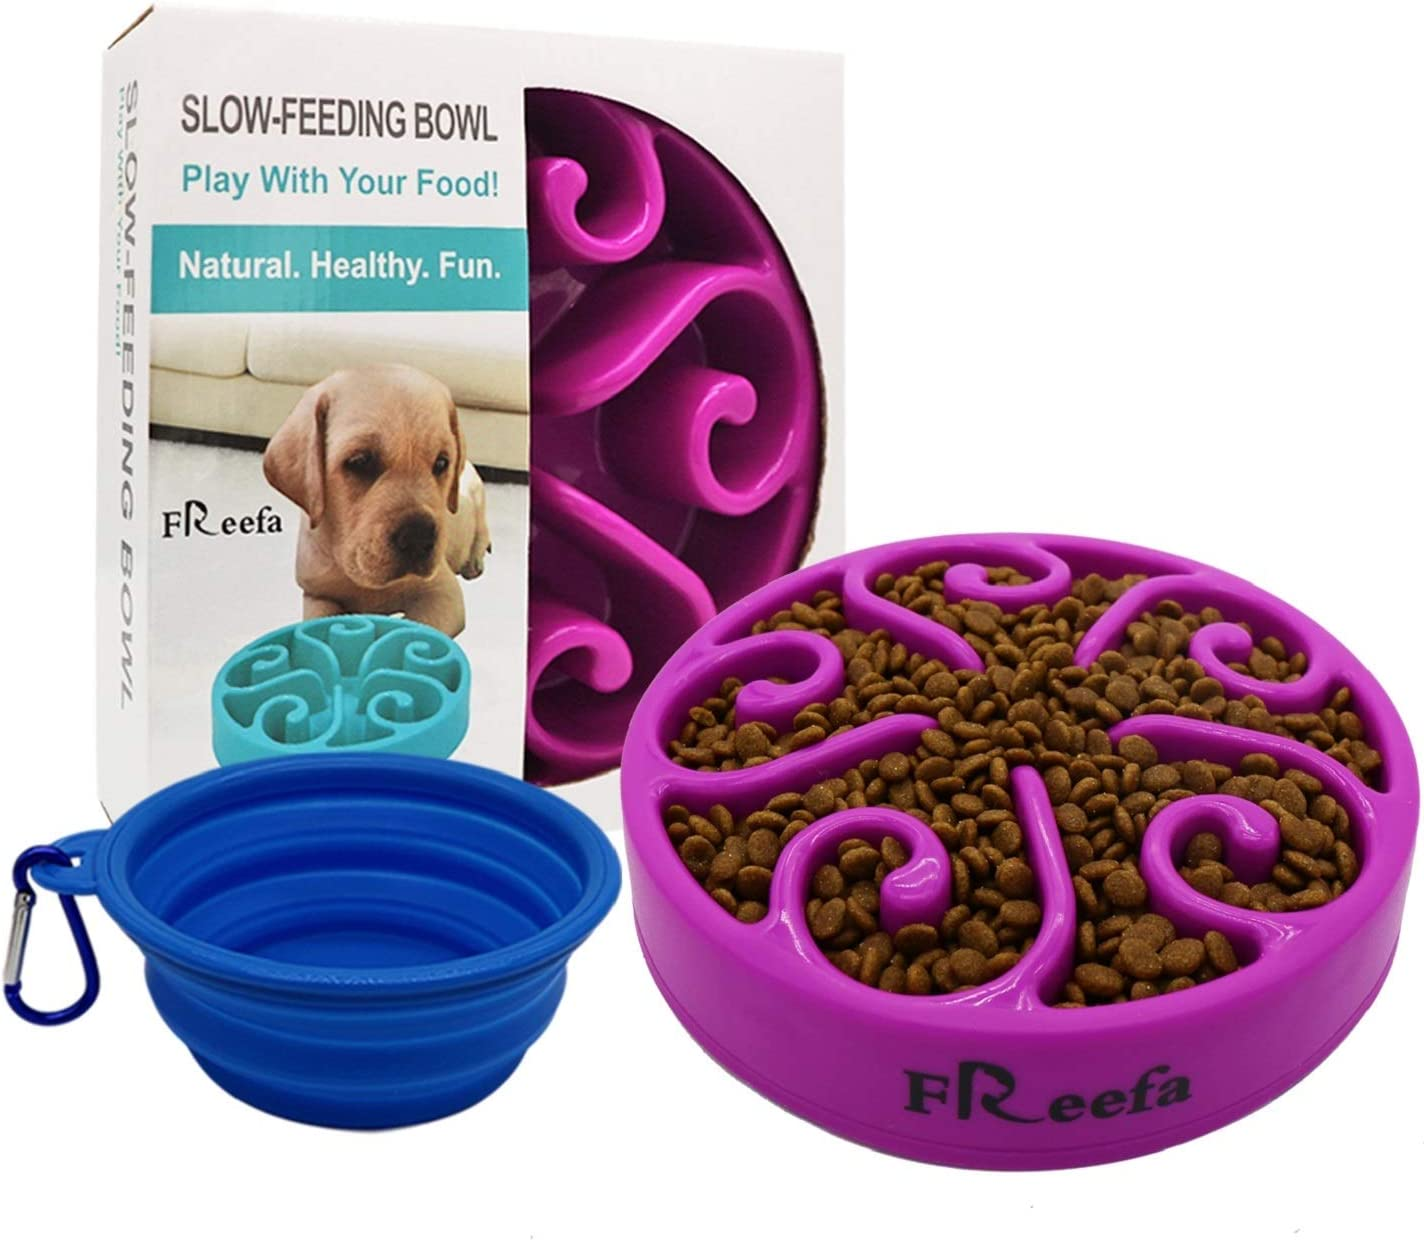 Freefa Slow Feeder Dog Bowl Bloat Stop Dog Food Bowl Maze Interactive Puzzle Non Skid, Come with Free Travel Bowl (Purple, for Small/Medium Dog)